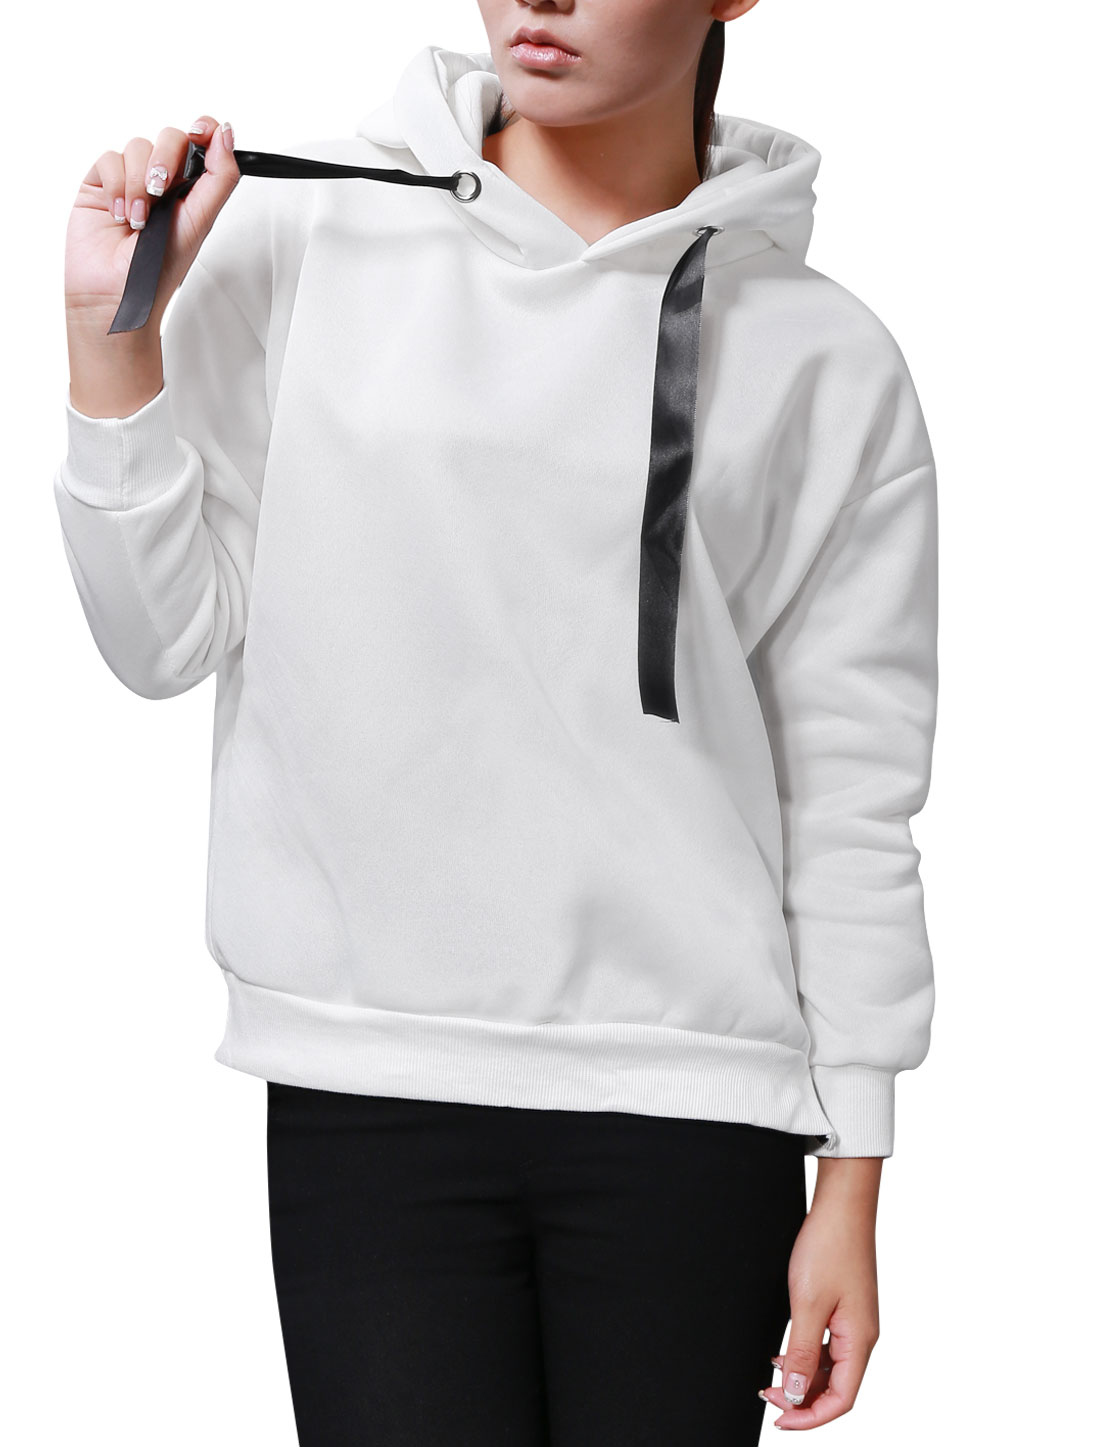 Lady Hooded Batwing Sleeve Zipper Side Casual Sweatshirt White XS